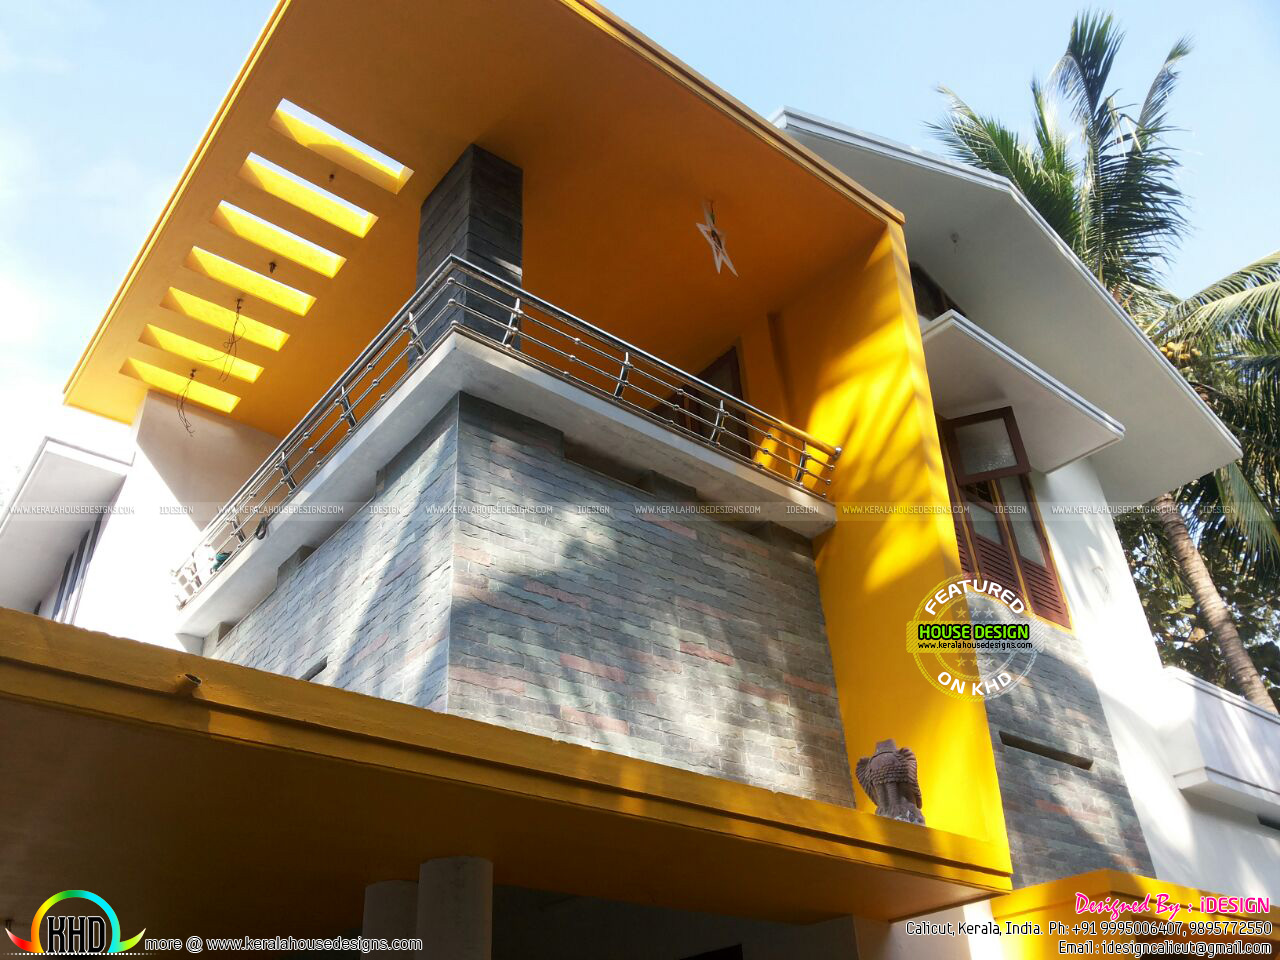 House design under 50 lakhs -  10 Lakhs Cost Renovated House